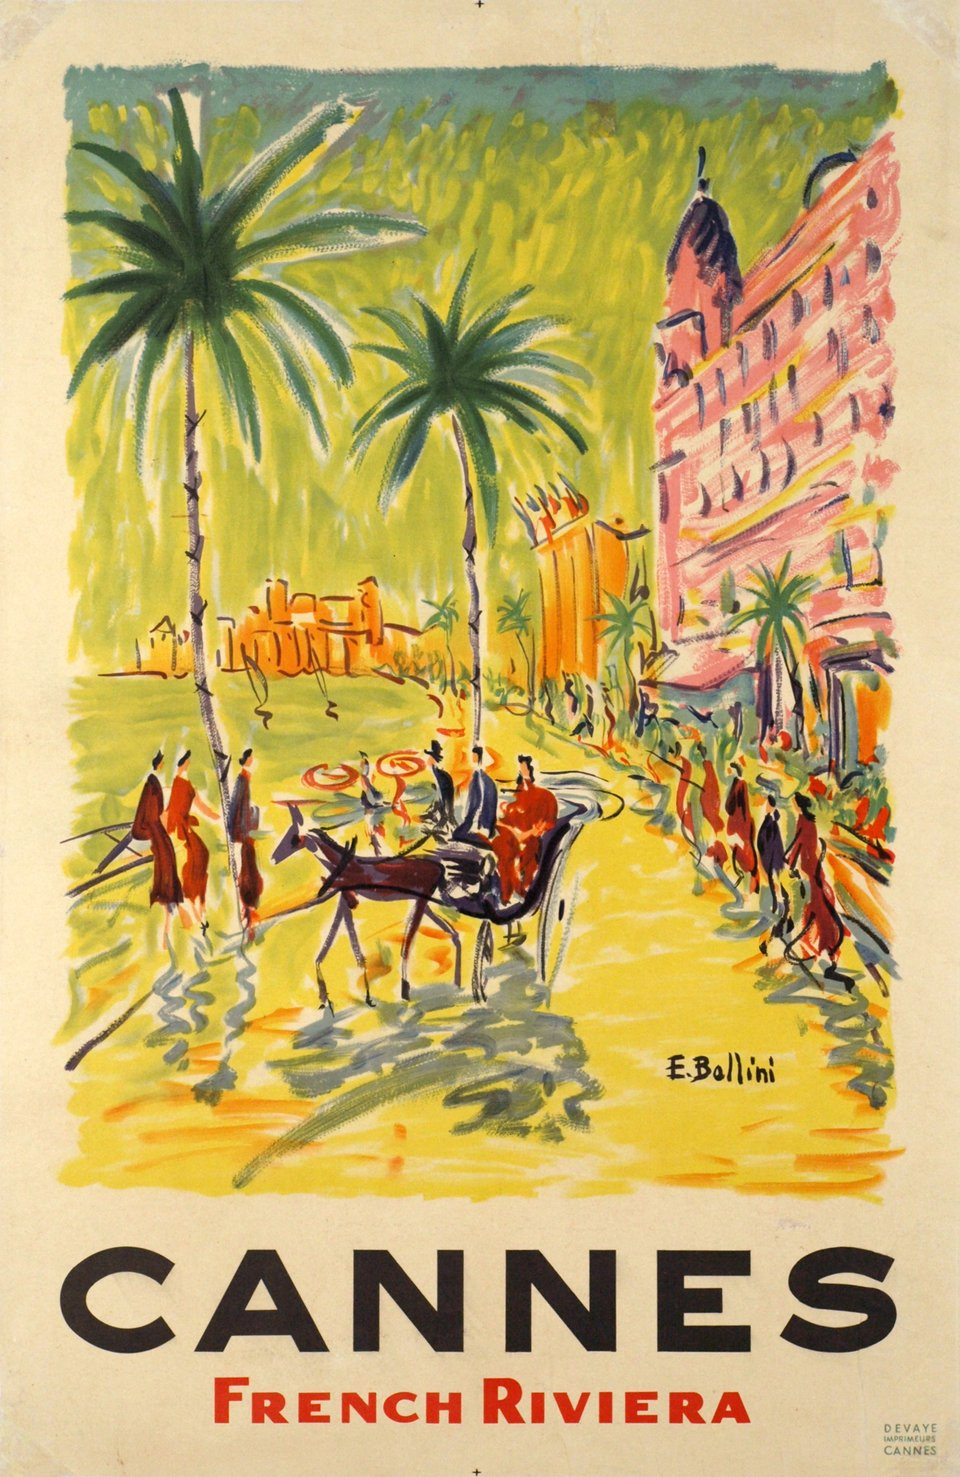 Cannes, French Riviera – Affiche ancienne – BOLLINI – 1958